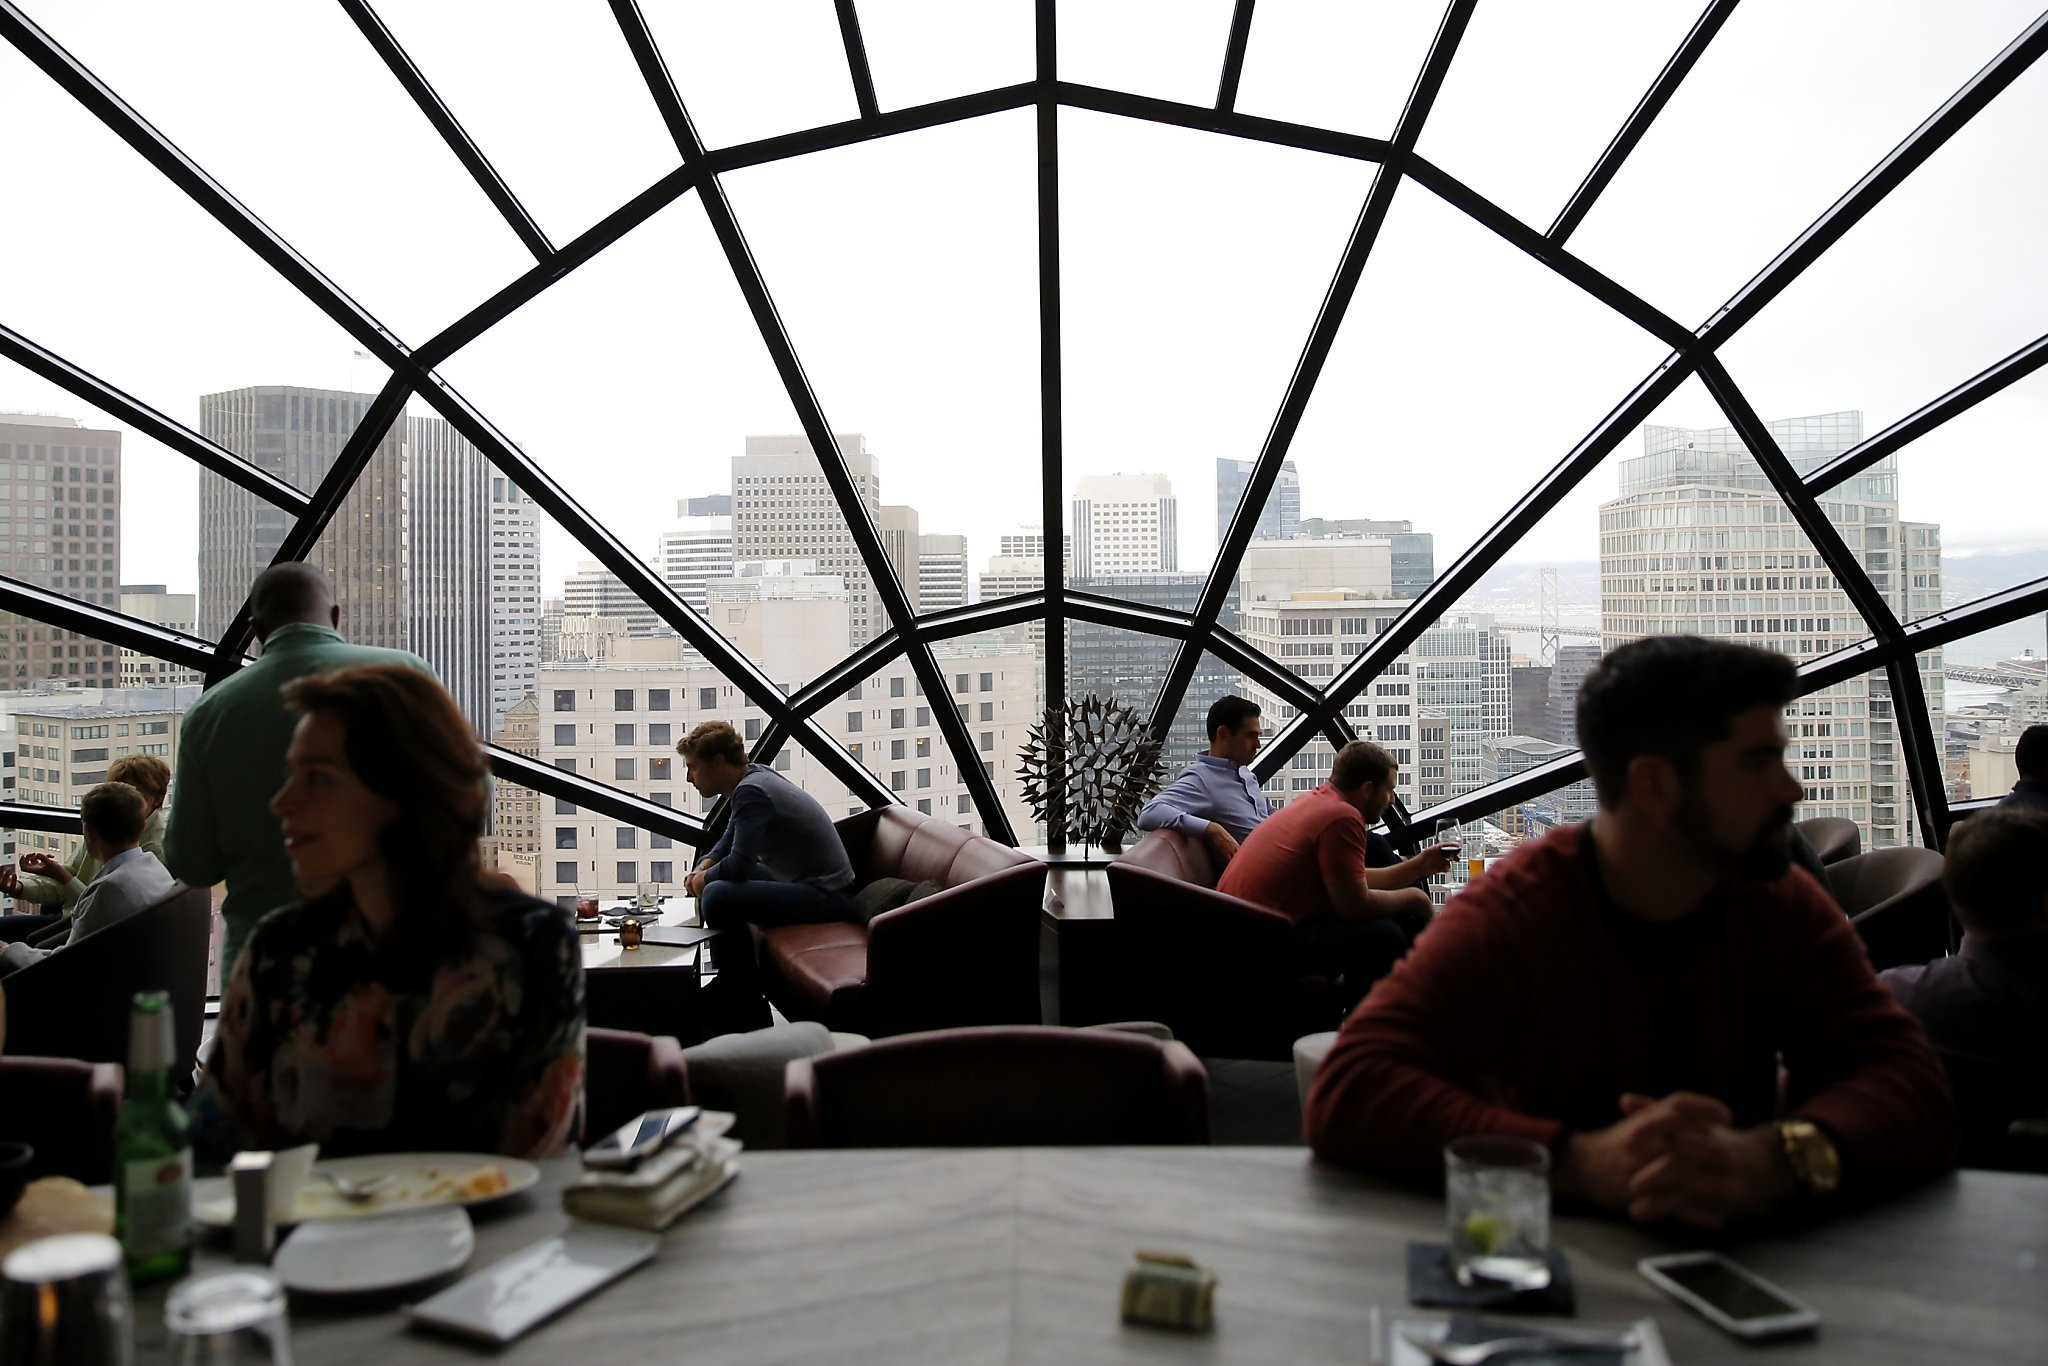 S F Doesn T Suffer From Lack Of High Rise Observation Decks Sfchronicle